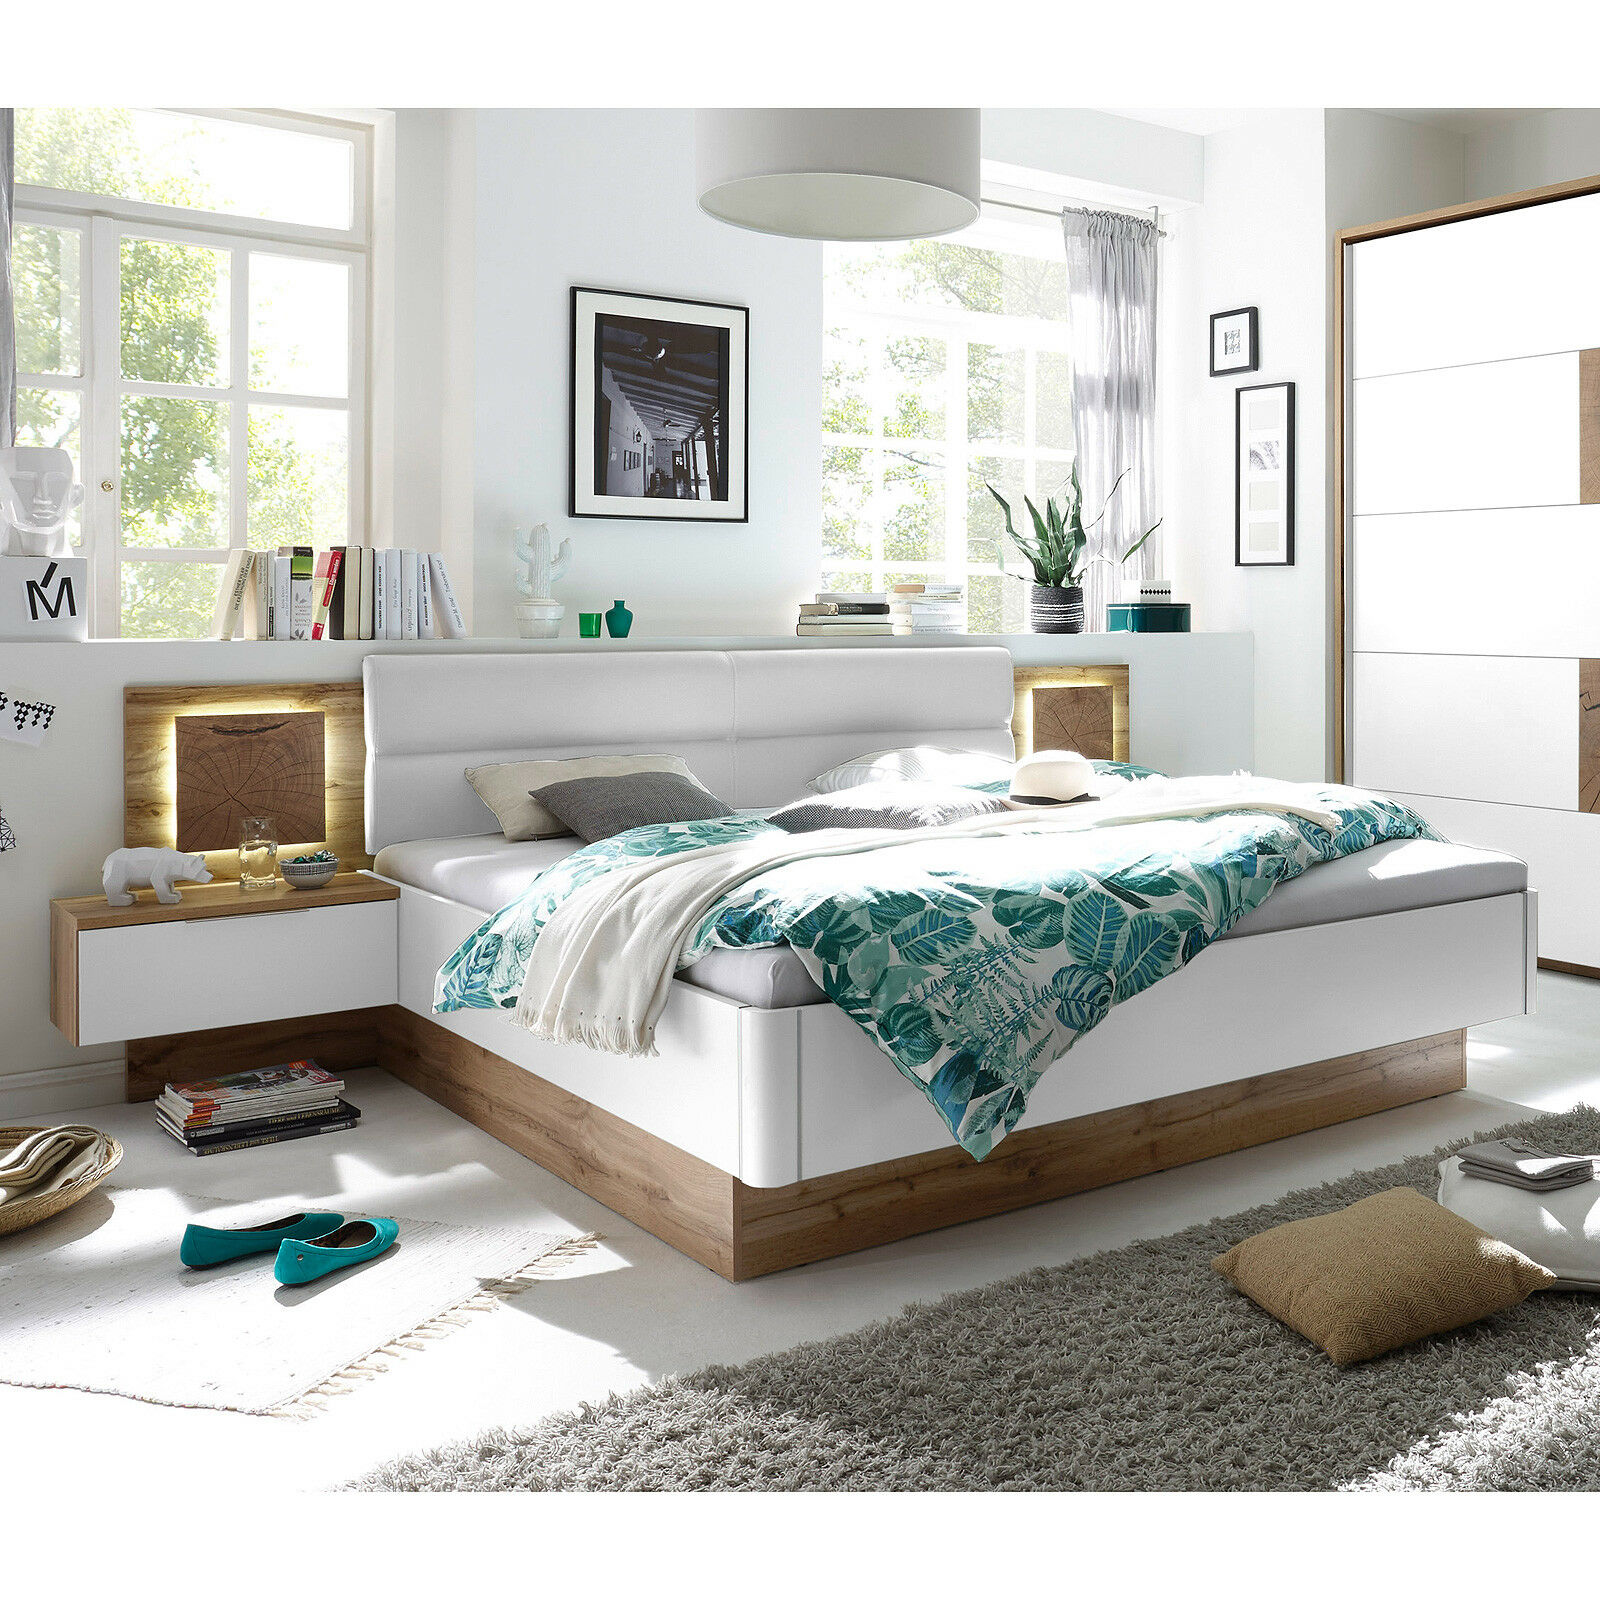 bettanlage capri wildeiche wei hirnholz mit 2 nachtkommoden inkl led 180x200 eur 449 95. Black Bedroom Furniture Sets. Home Design Ideas